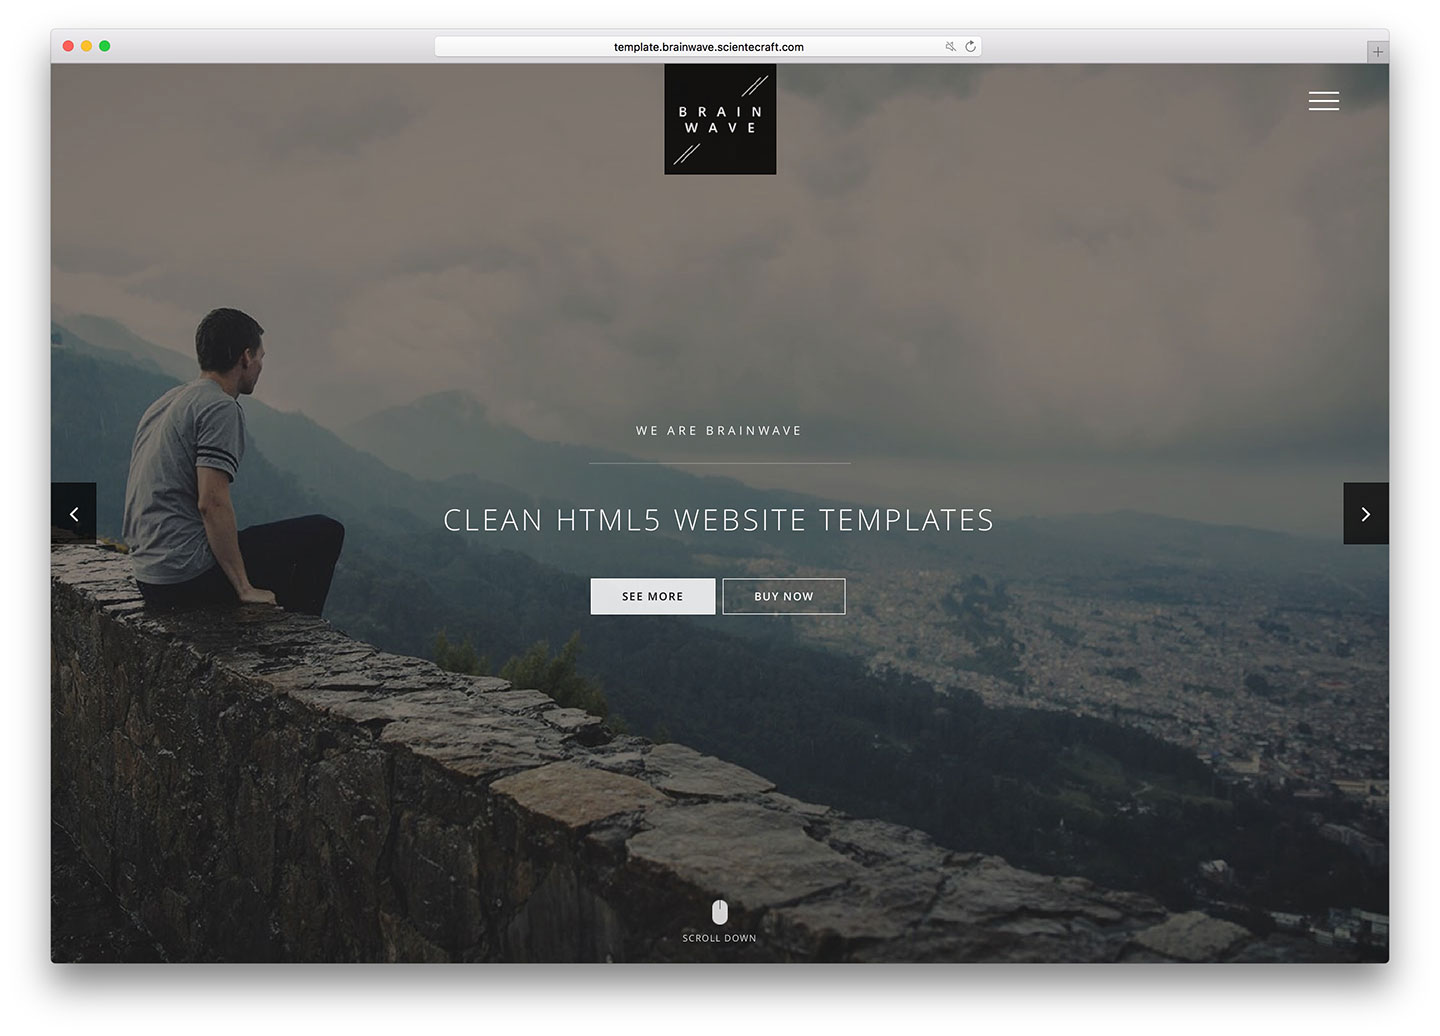 26 Top Clean HTML5/CSS3 Website Templates 2019 - Colorlib Home Design Security Examples Html on email design example, steel building design example, prospectus design example, home theater design example, technical design example, web site design example, service design example, system design example, irrigation design example, environmental design example, research design example, signage design example, industrial design example, information design example, water treatment plant design example, business design example, fpga design example, database design example, engineering design example, software design example,